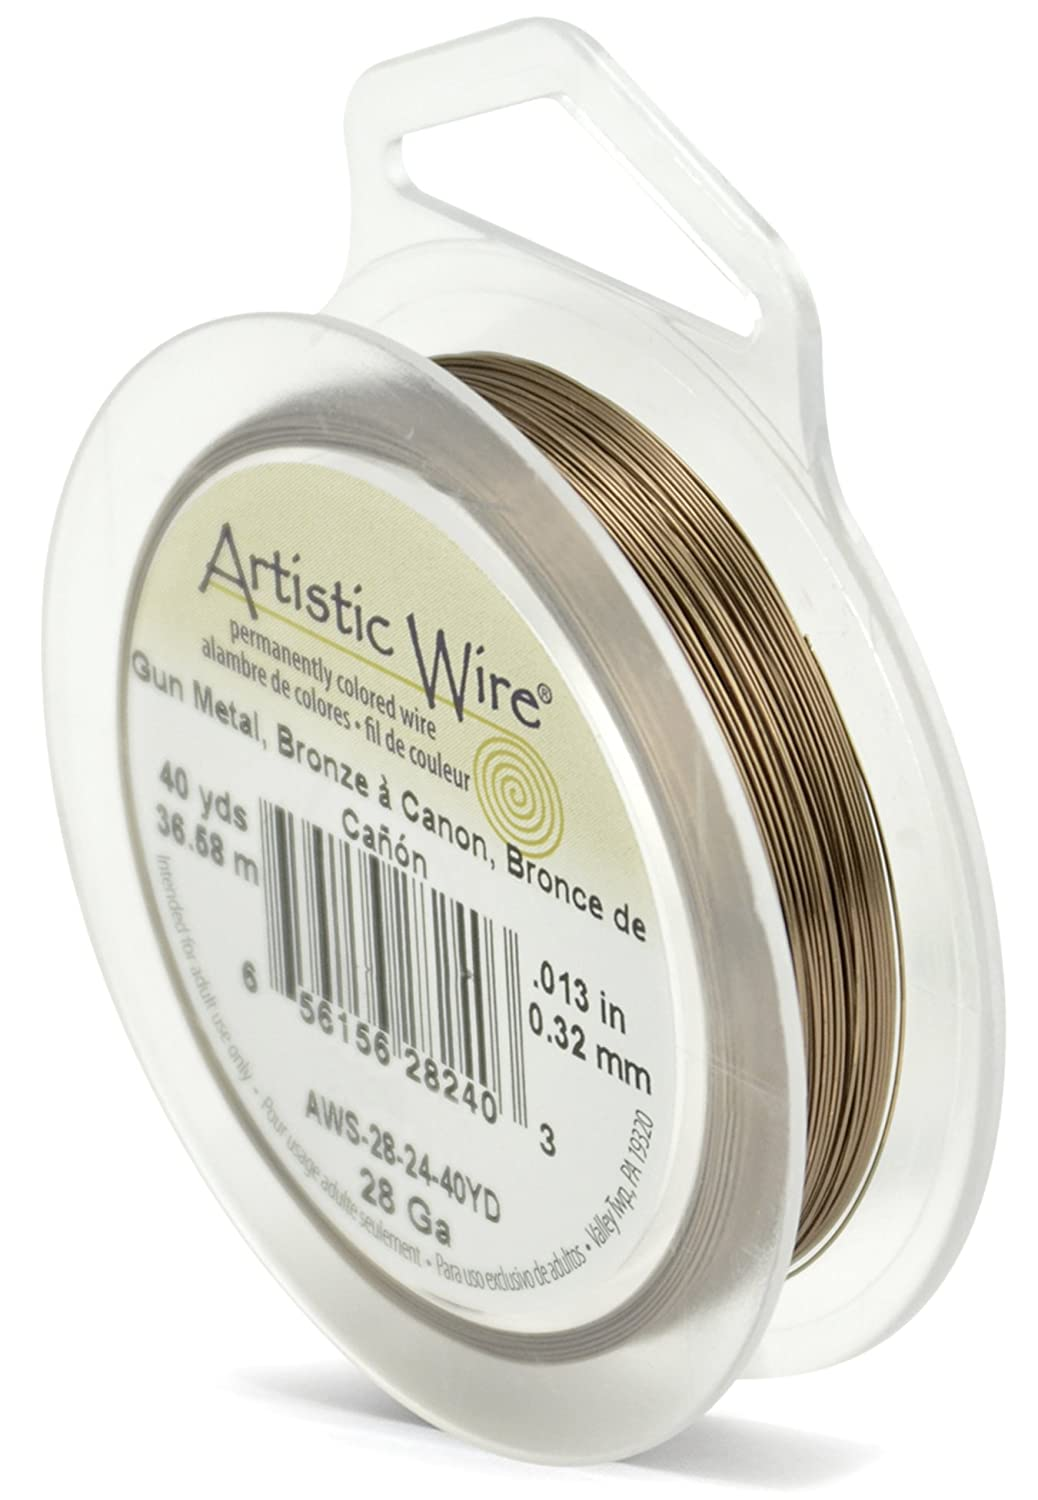 Artistic Wire 28-Gauge Antique Brass, 40-Yards Beadalon AWS-28-24-40YD